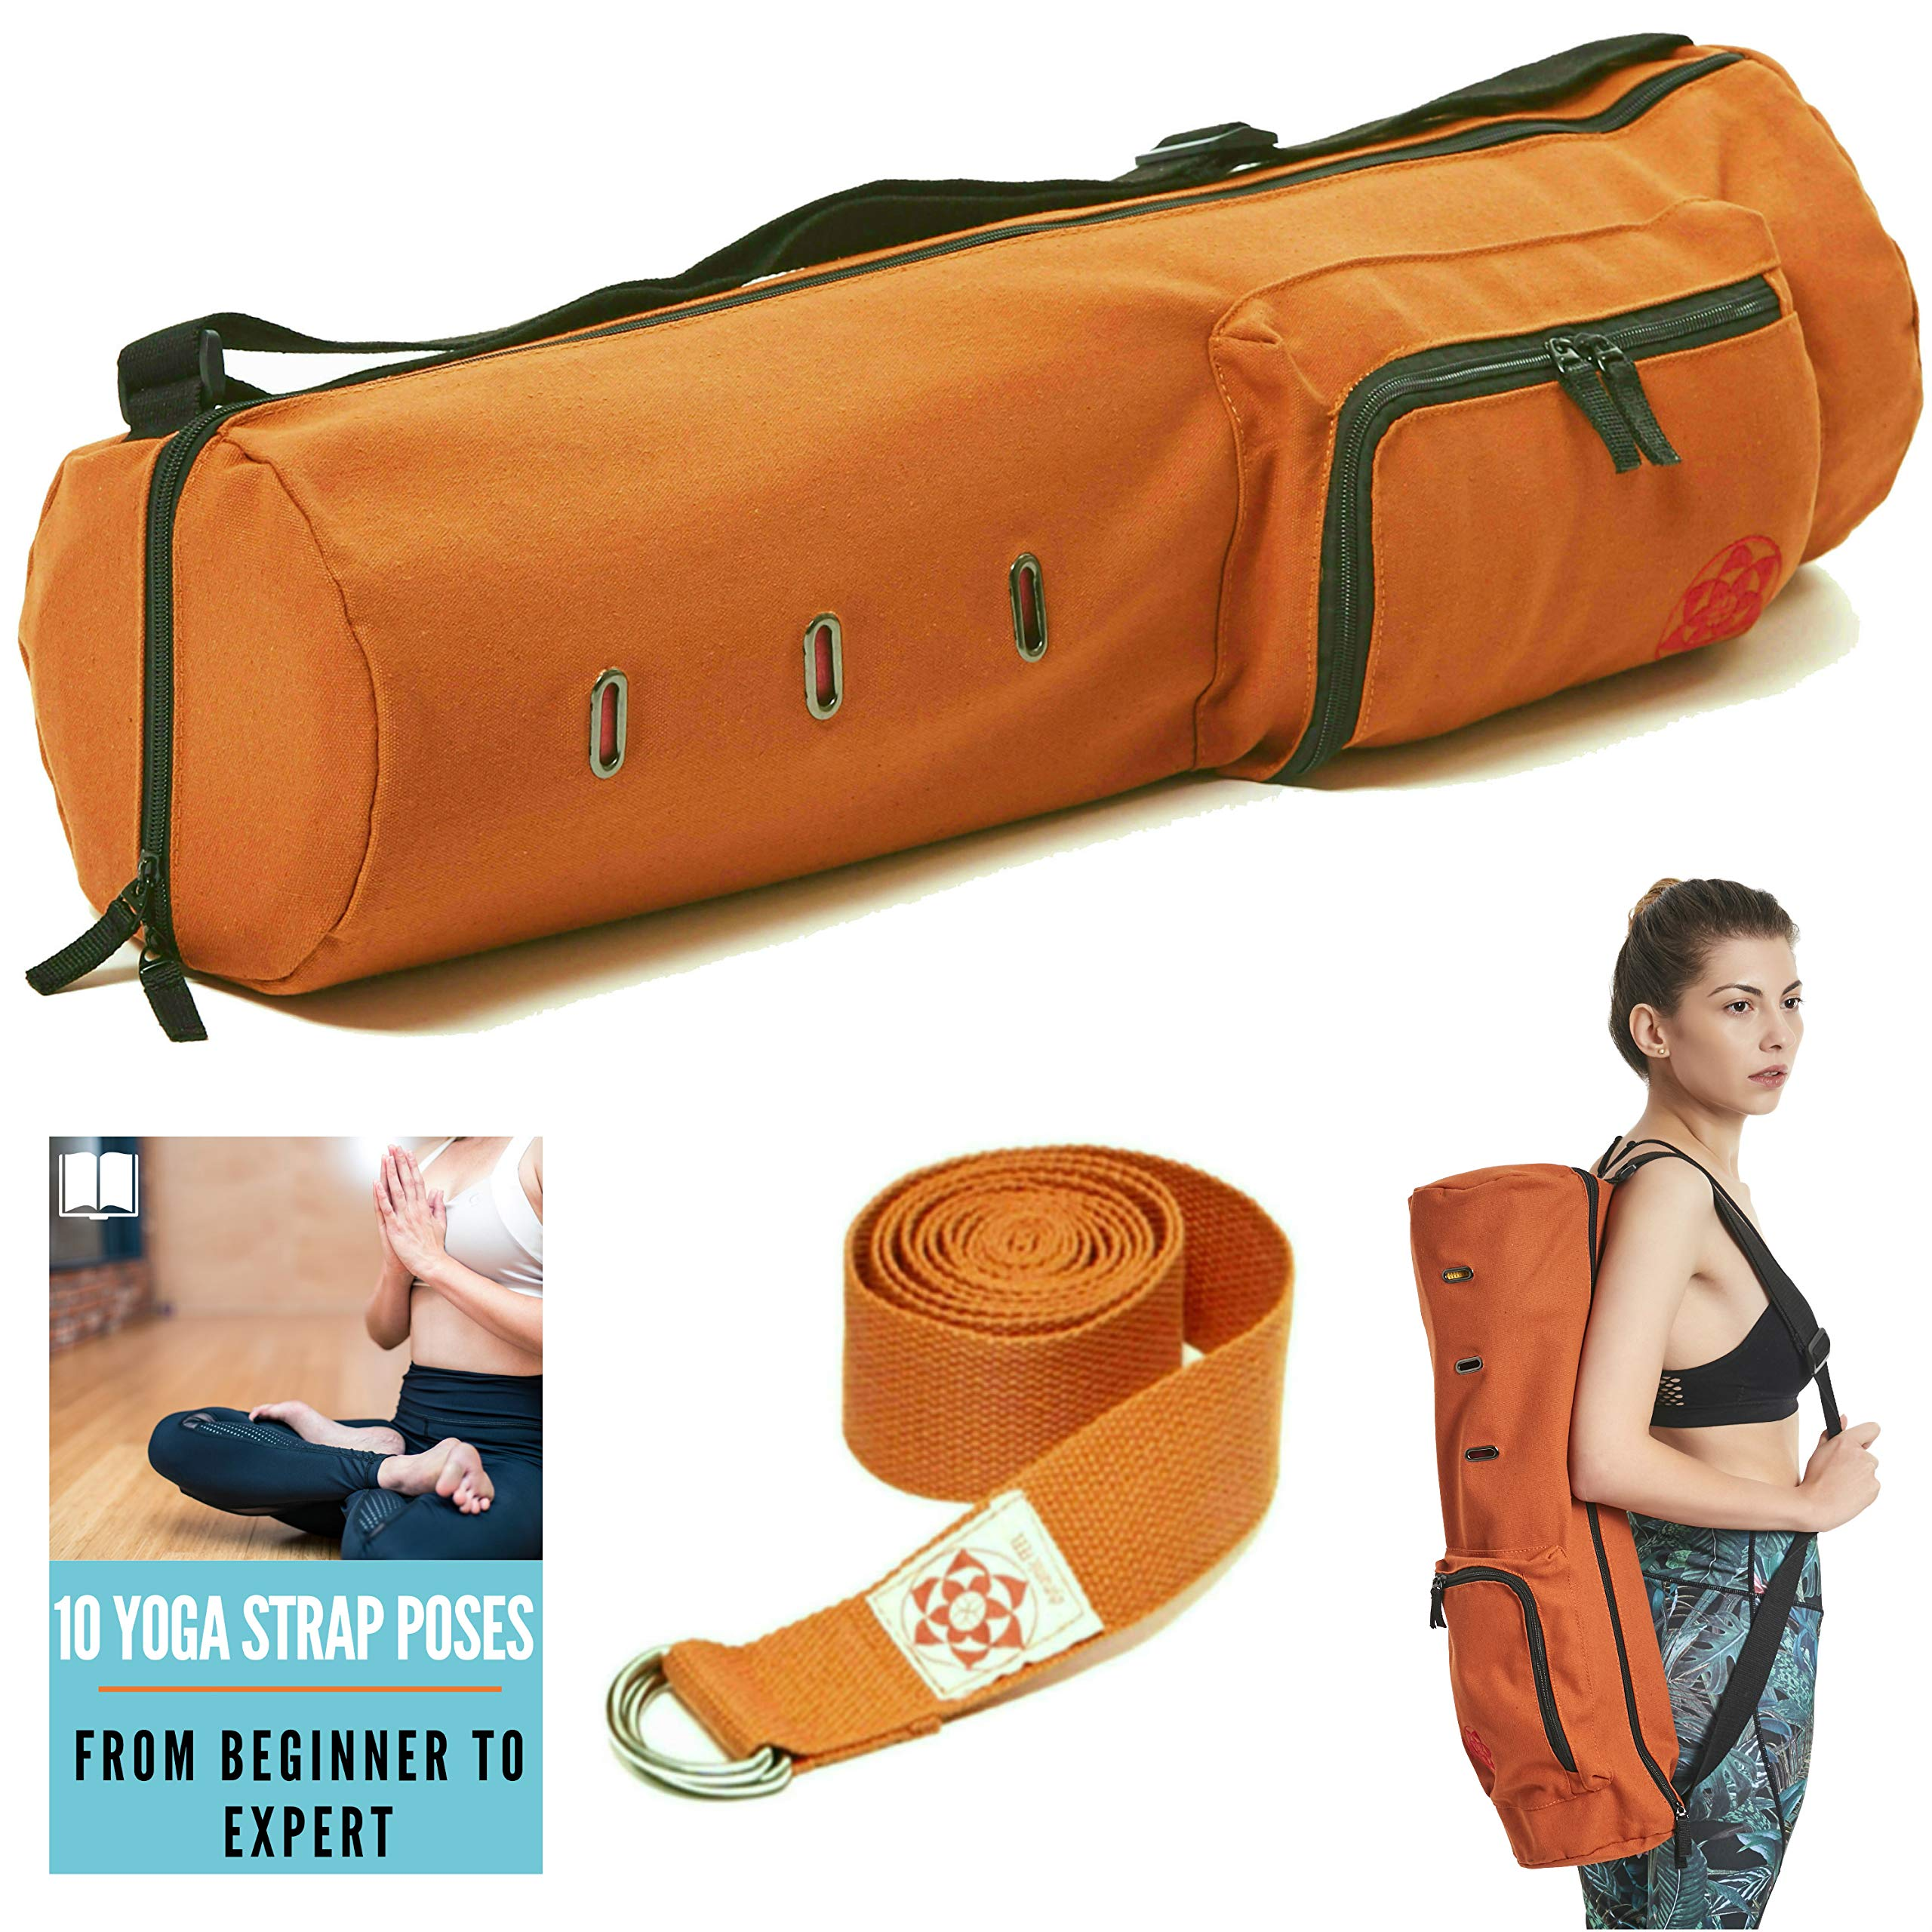 Yoga Mat Carrier Bag for Men and Women, Yoga Mat Sling, Full Zip for Easy Access and Storage Pockets Yoga Mat Bag, Washable and Sturdy Cotton Canvas